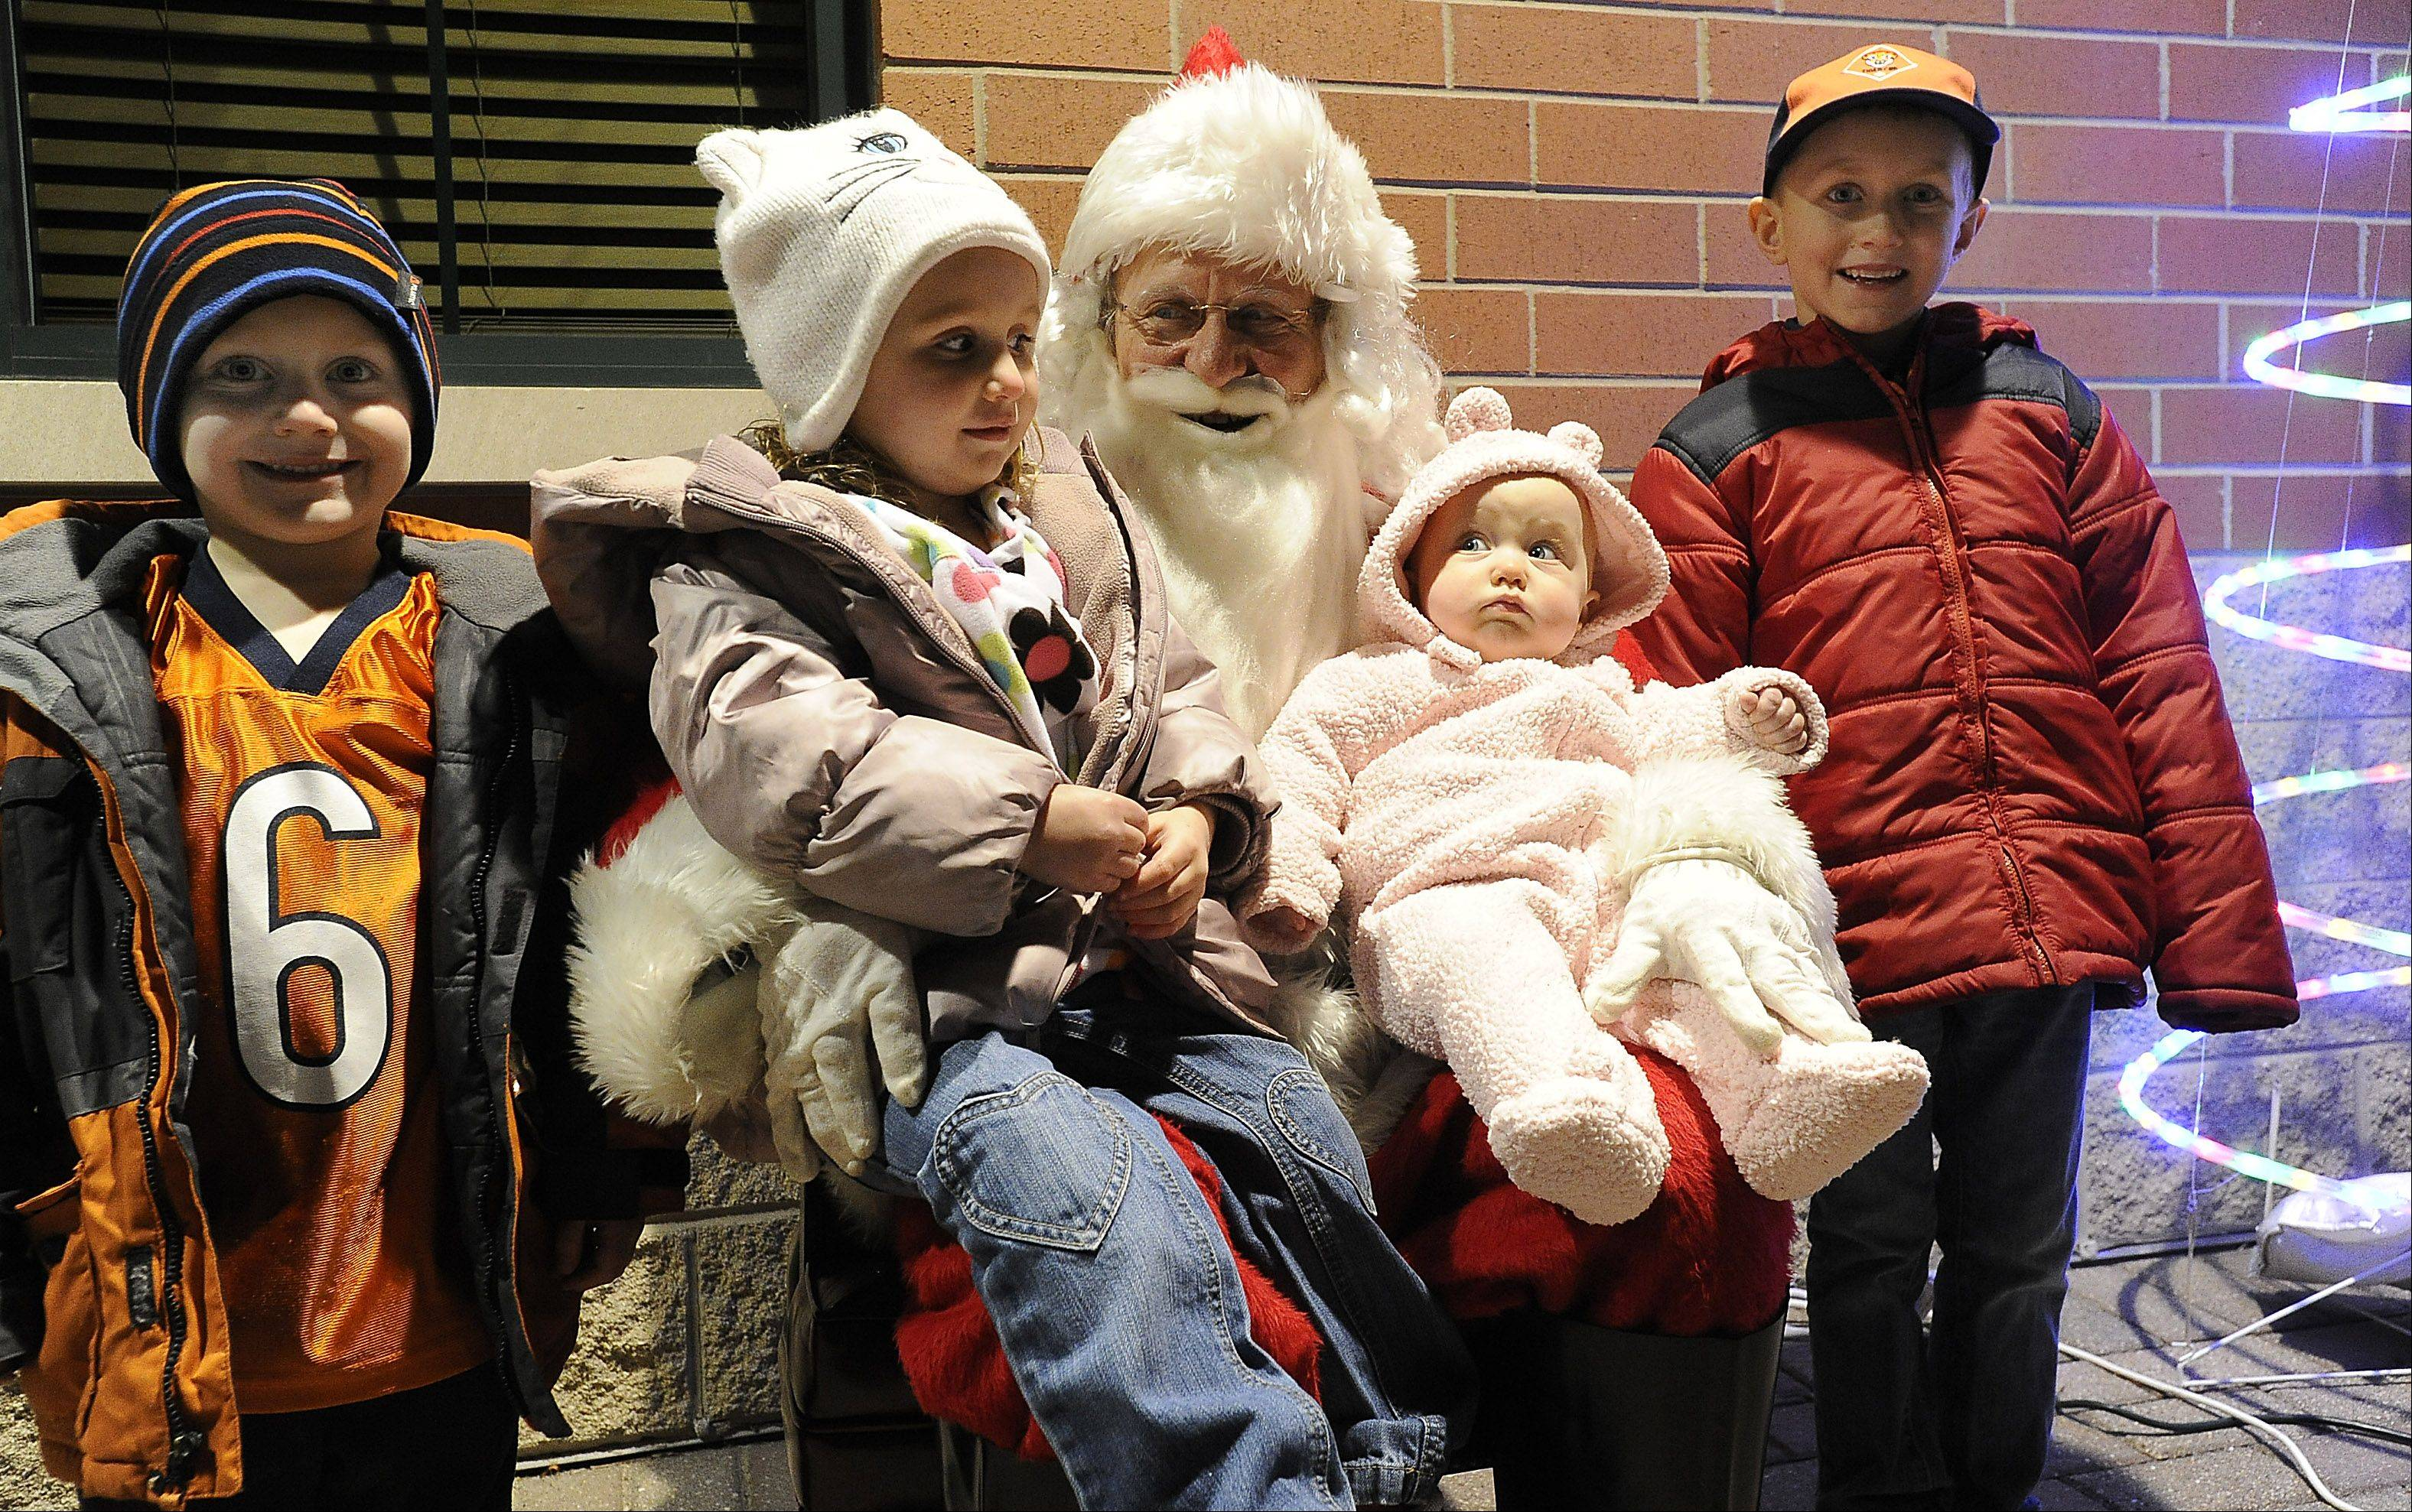 The Mabry children of Prospect Heights -- Matthew, 4, Graceleen, 3, Mikayla, 8 months, and Nathan, 7 -- visit with Santa at the Prospect Heights tree-lighting held at city hall on Saturday.